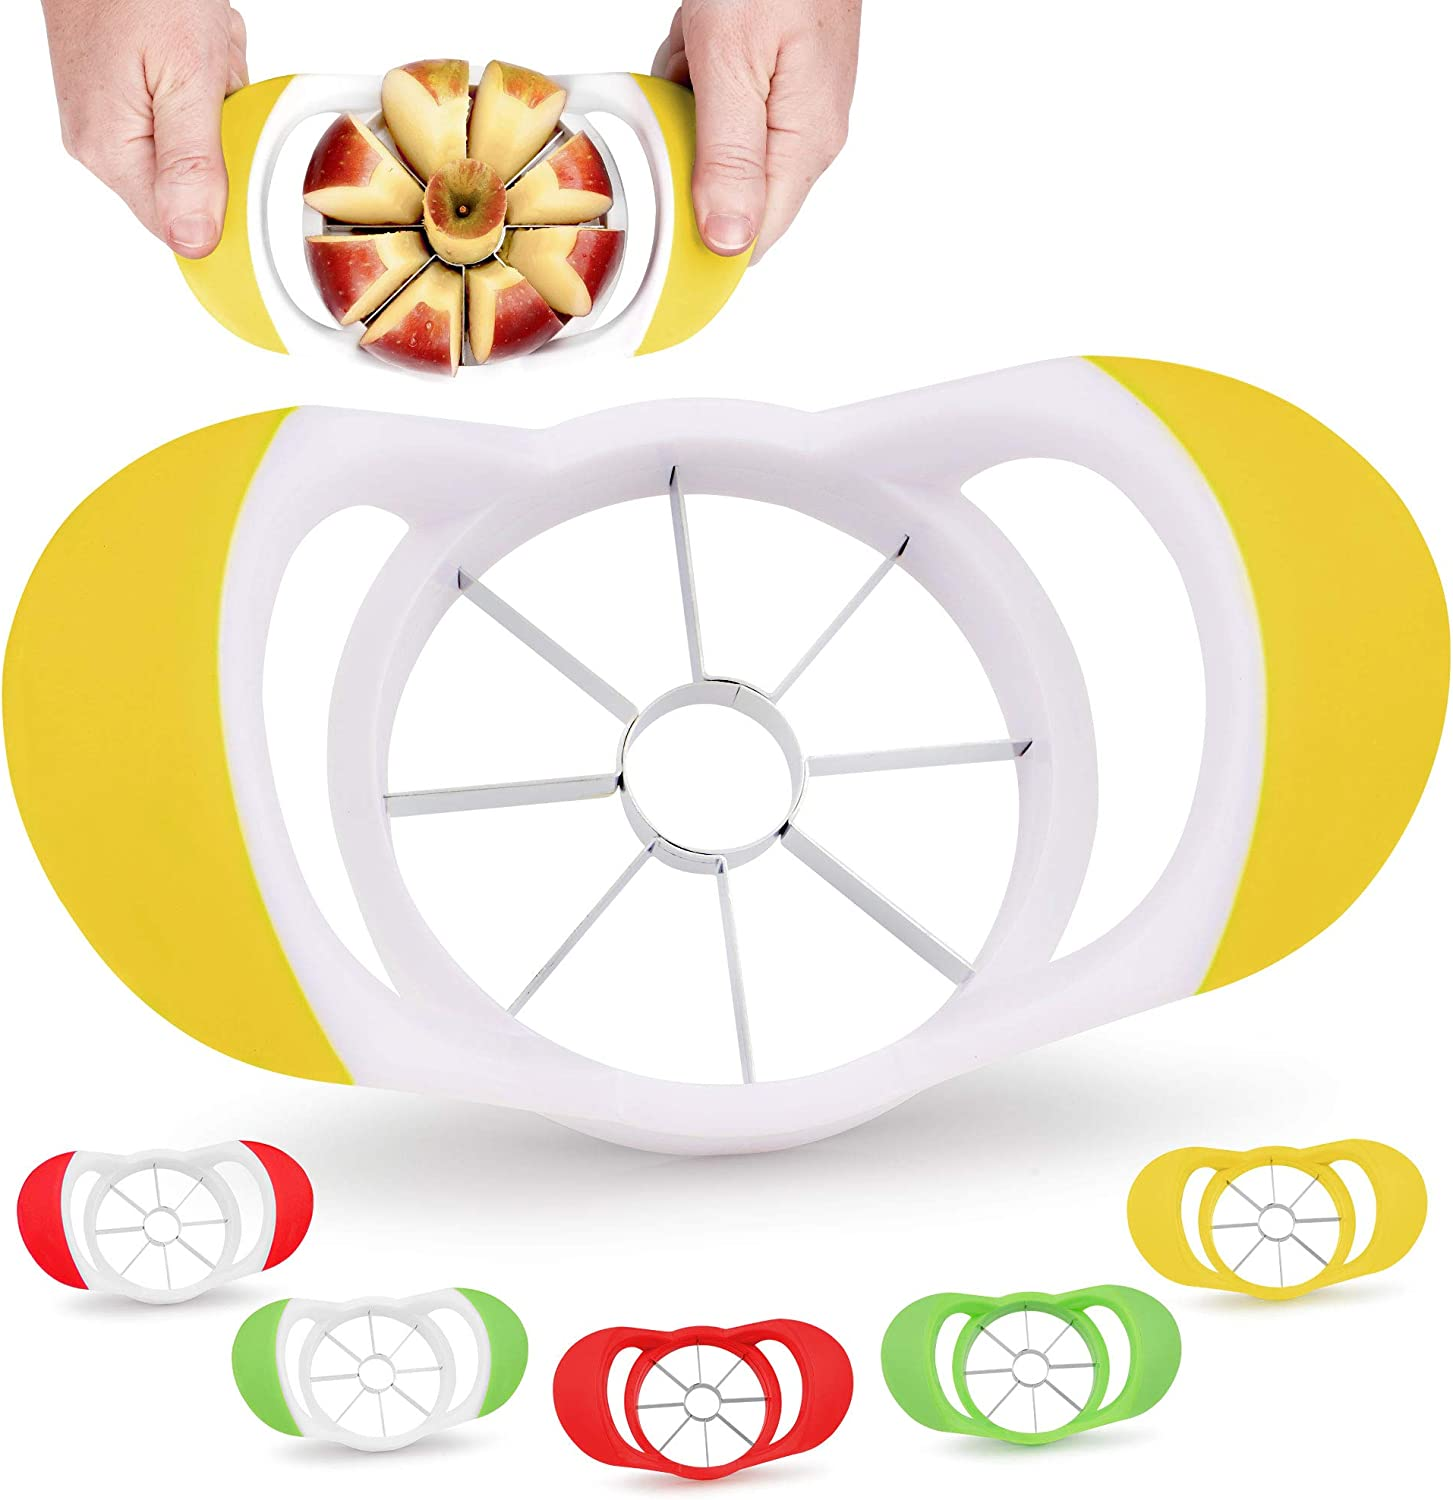 Zulay 8 Blade Apple Slicer - Easy Grip Apple Cutter With Stainless Steel Blades - Fast Usage Apple Corer And Slicer Tool That Saves Time & Effort (Yellow & White)